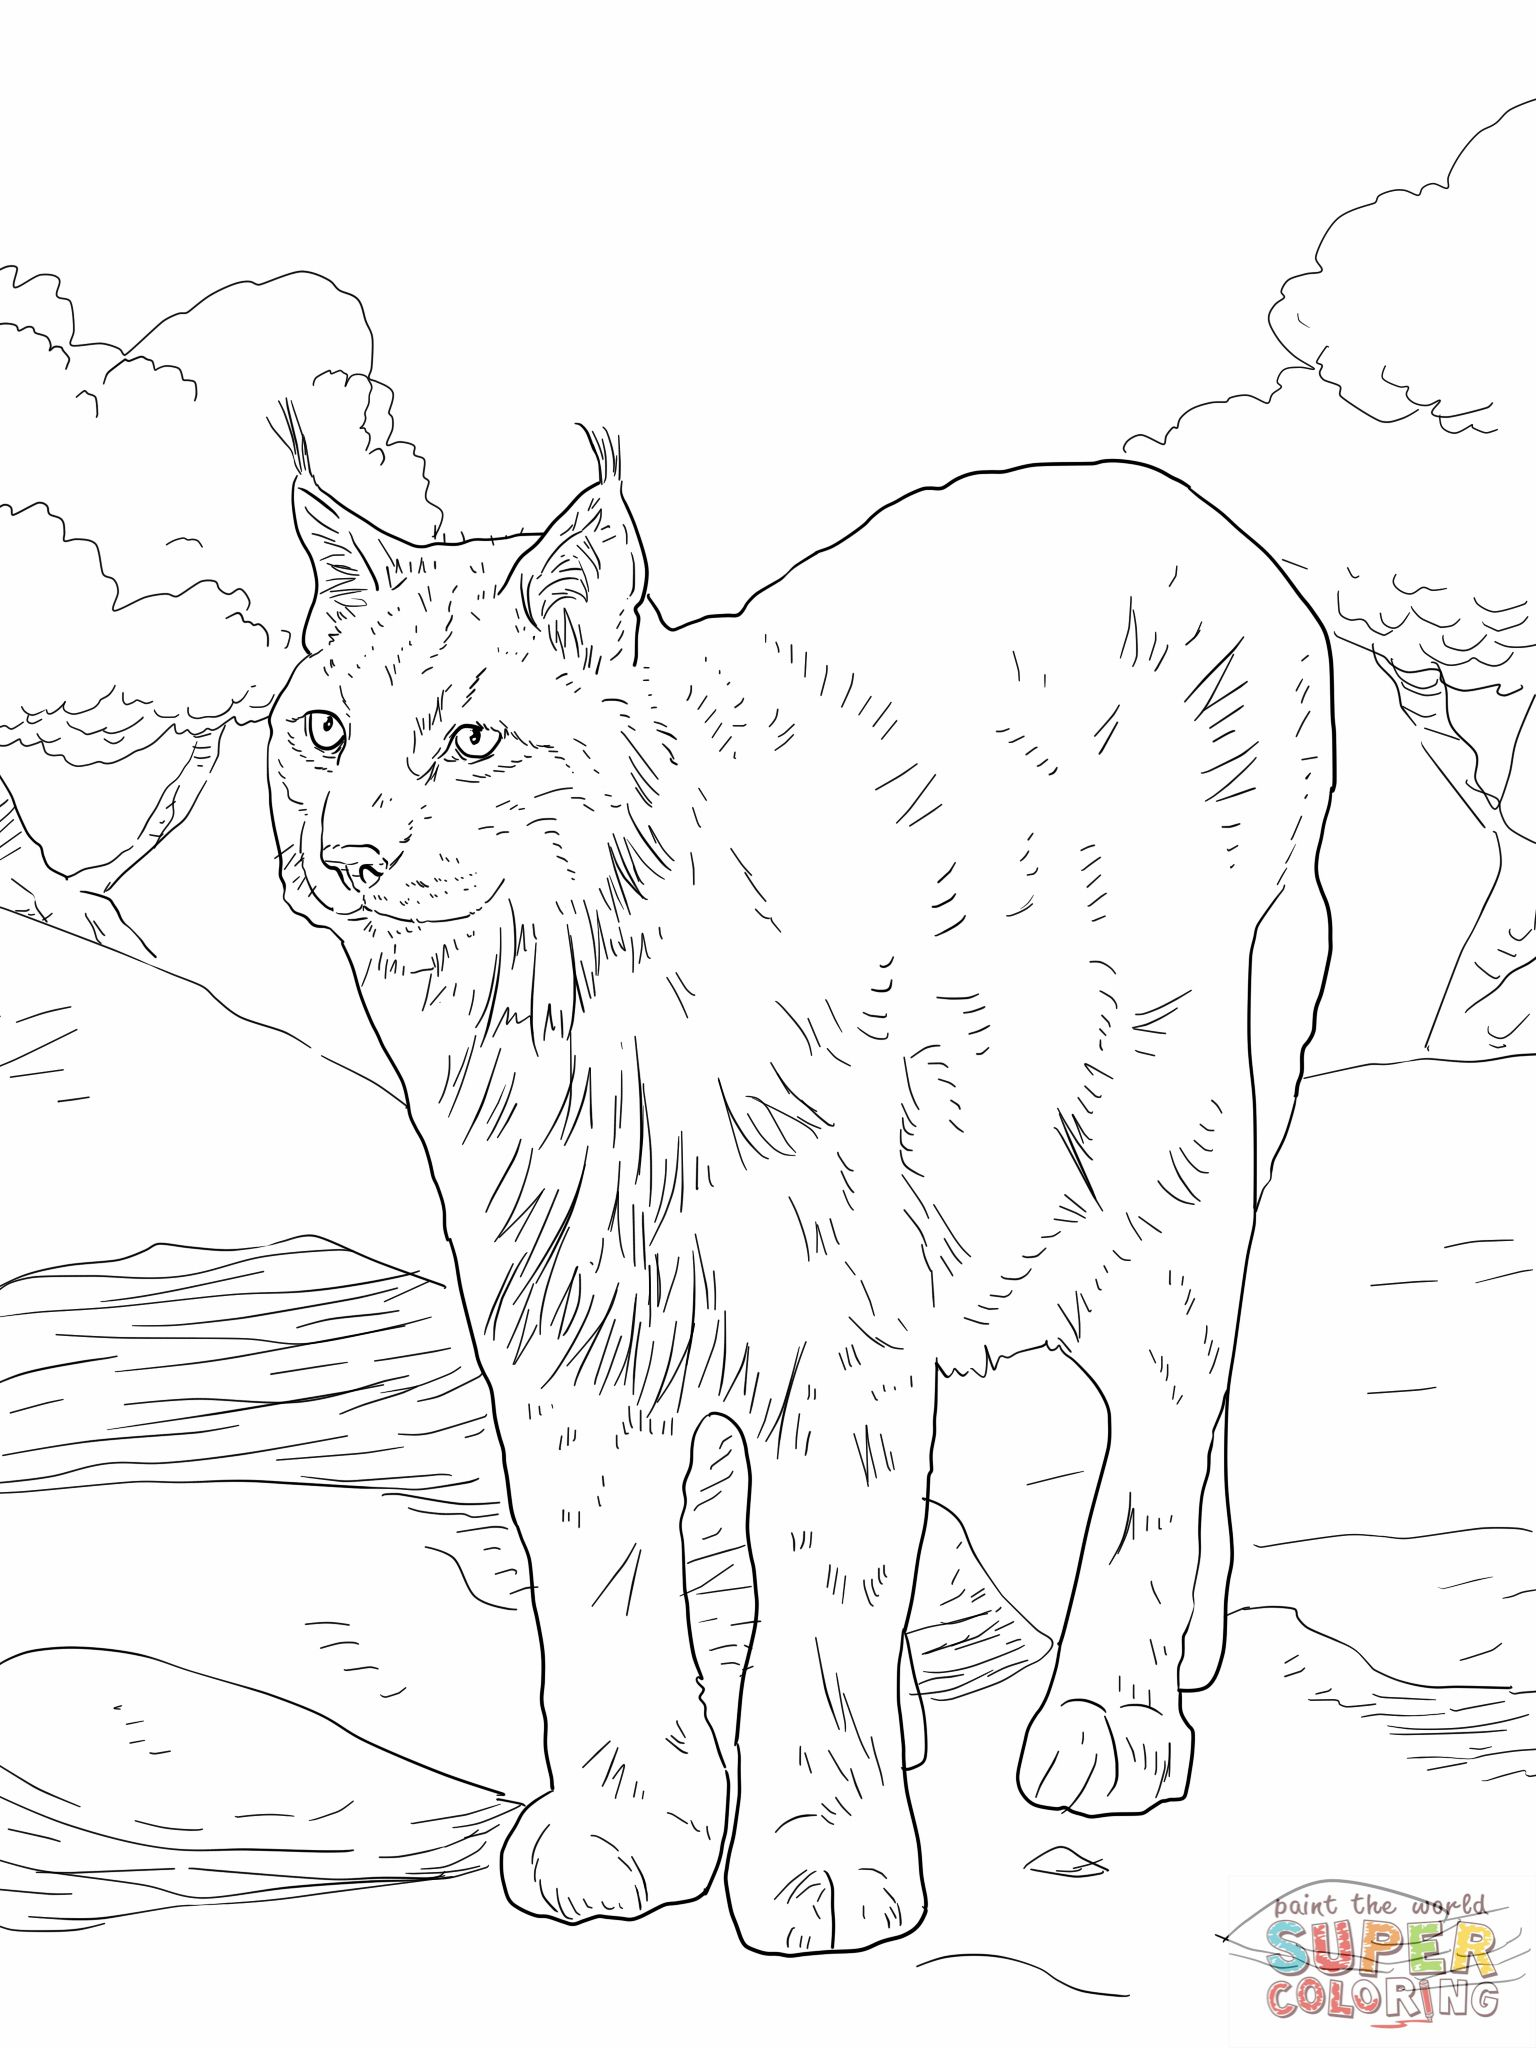 bobcat coloring pages lynx coloring pages eurasian lynx coloring